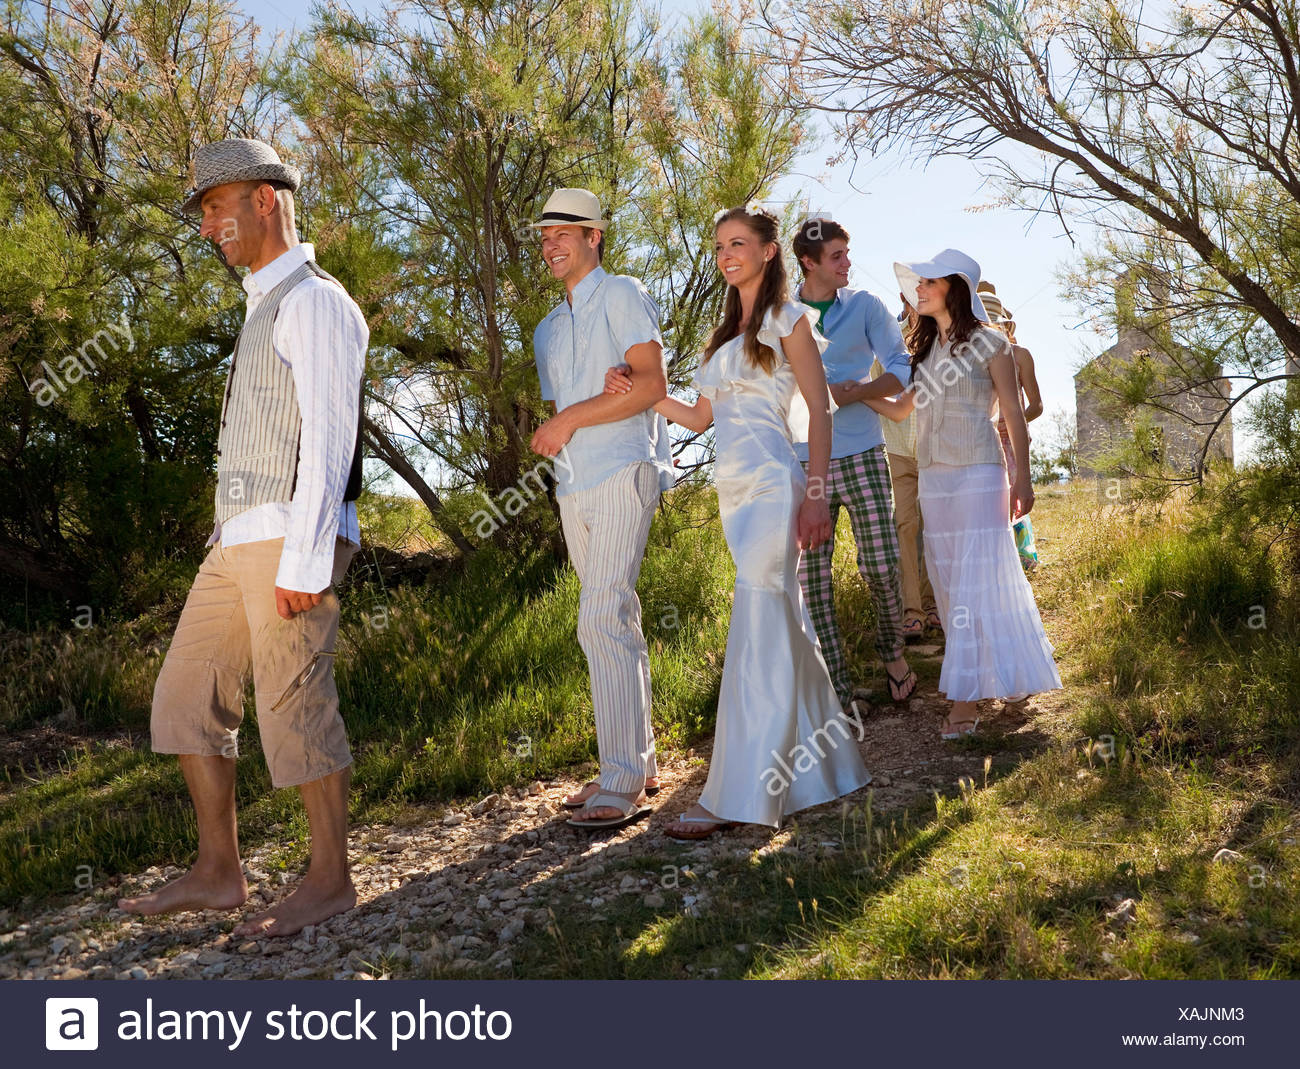 Bridal procession walking on rural path - Stock Image